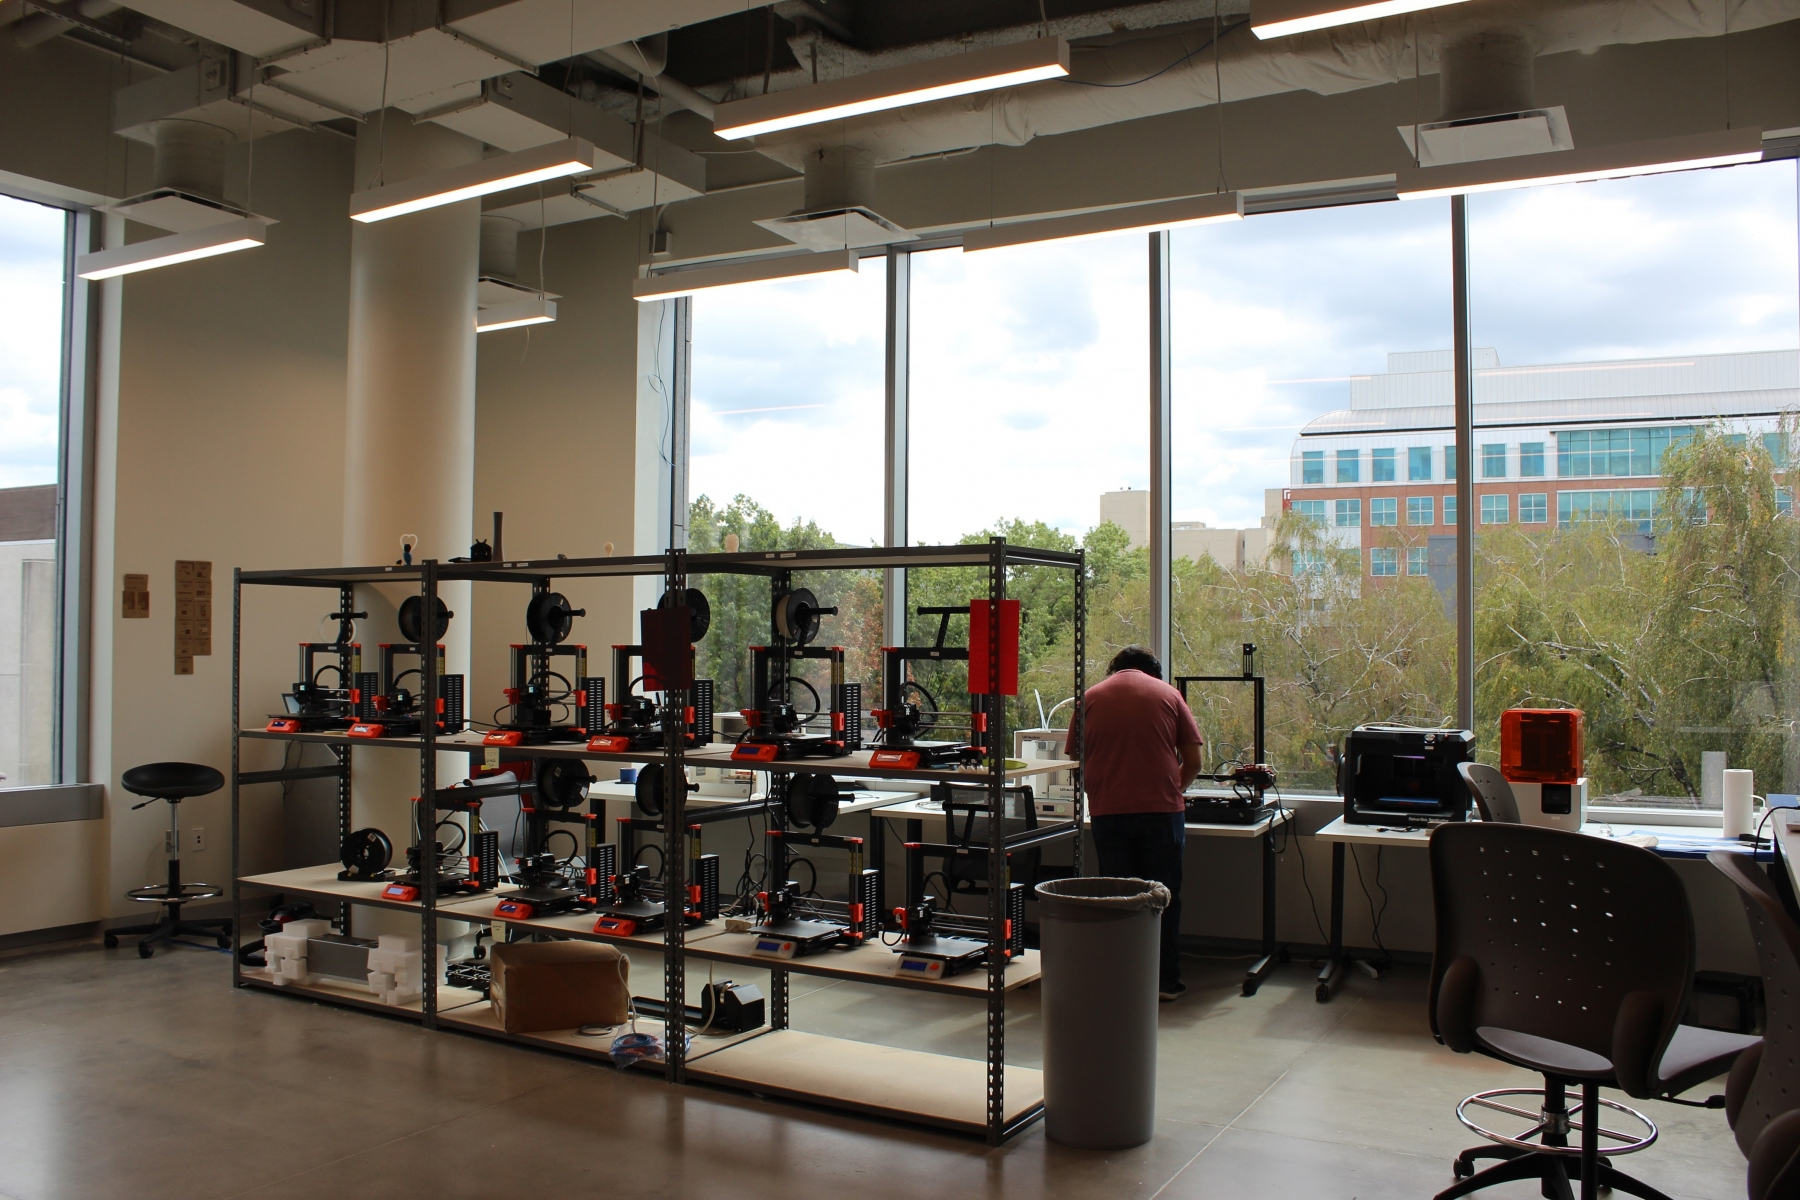 Makerspace at Temple University